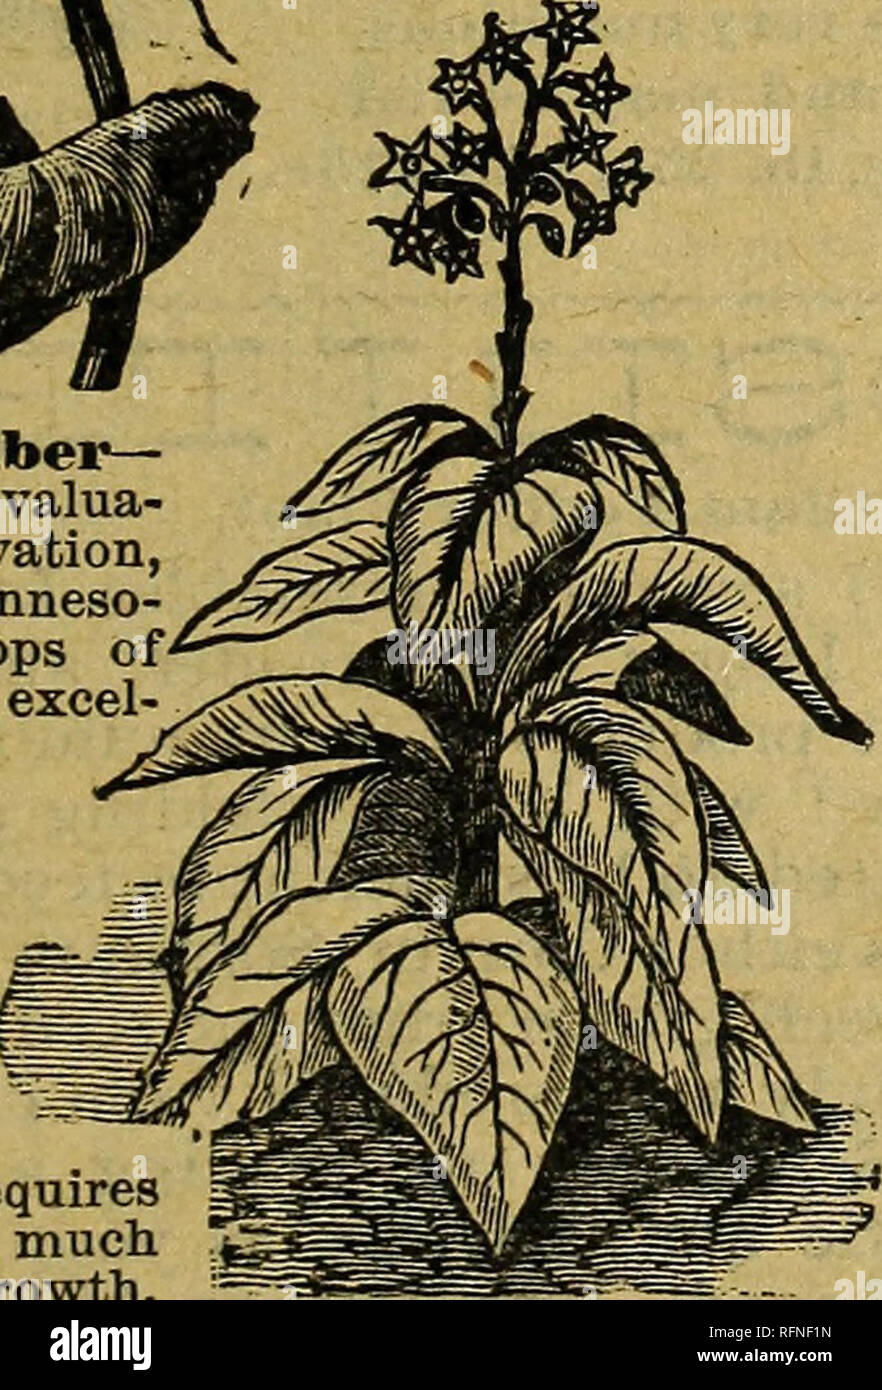 Annual catalogue of celebrated trademark seeds and other specialties